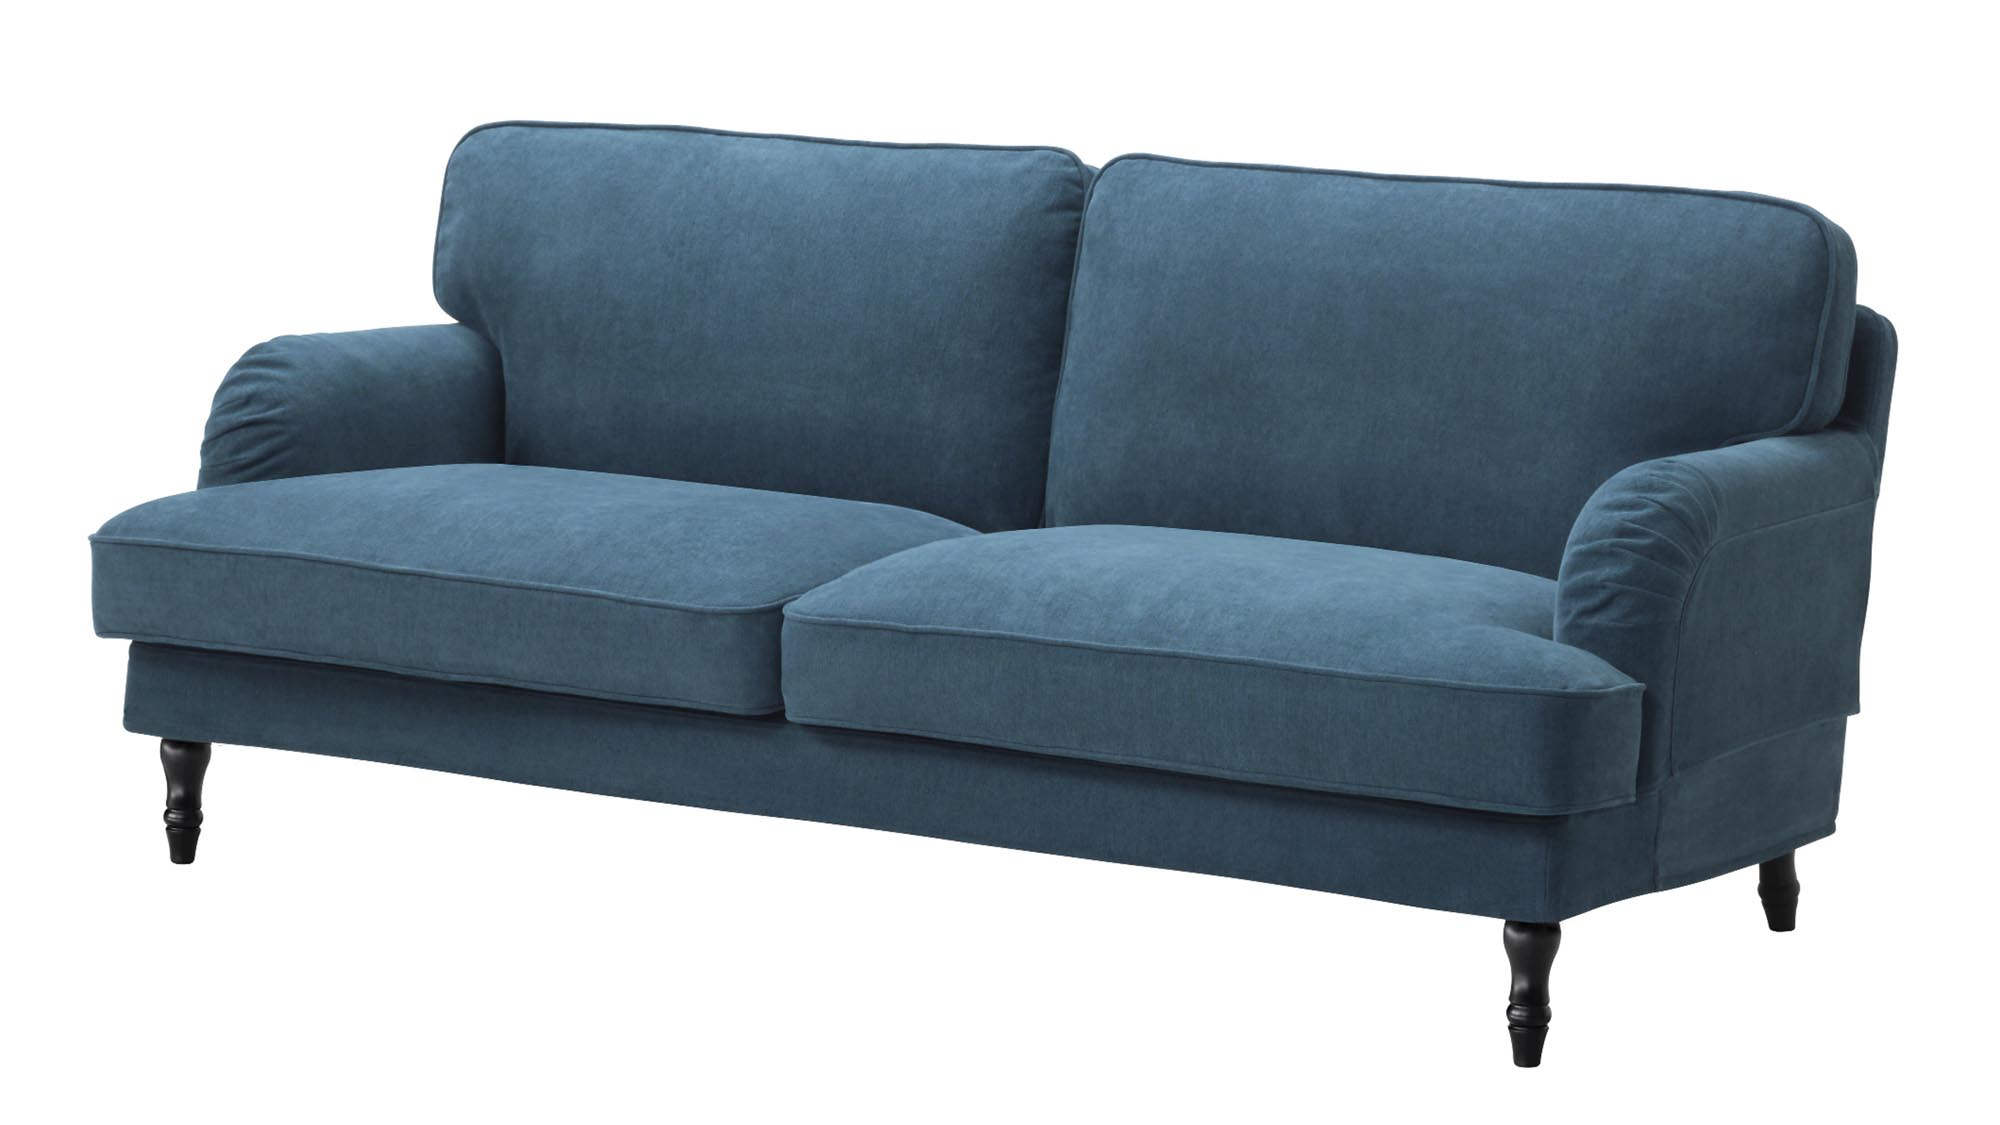 This Traditional Style Sofa, Which Is Available As A Two Or Three Seater,  Looks And Feels A Lot More Expensive Than It Is. The Seating Cushions Have  A Core ...